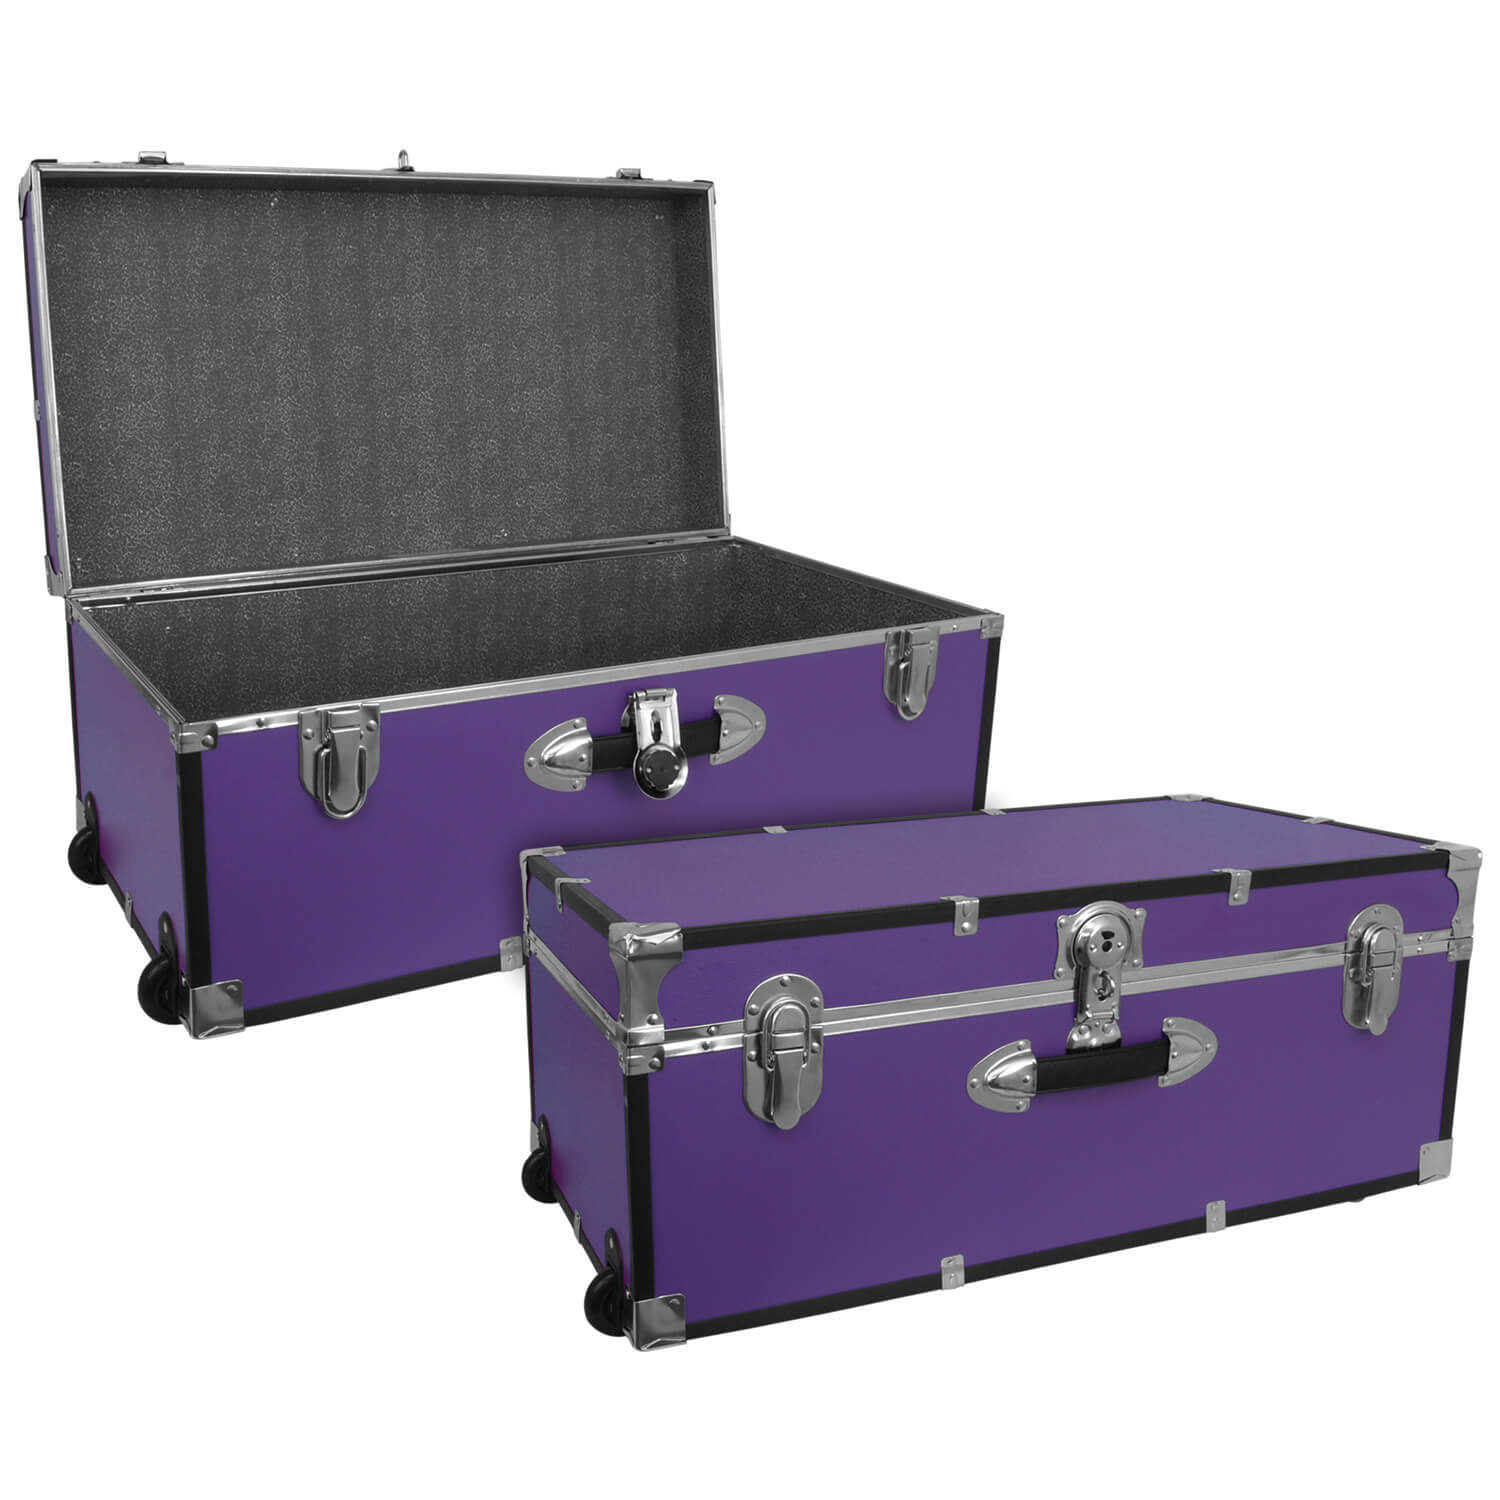 Large Luggage Trunk with Wheels - Purple